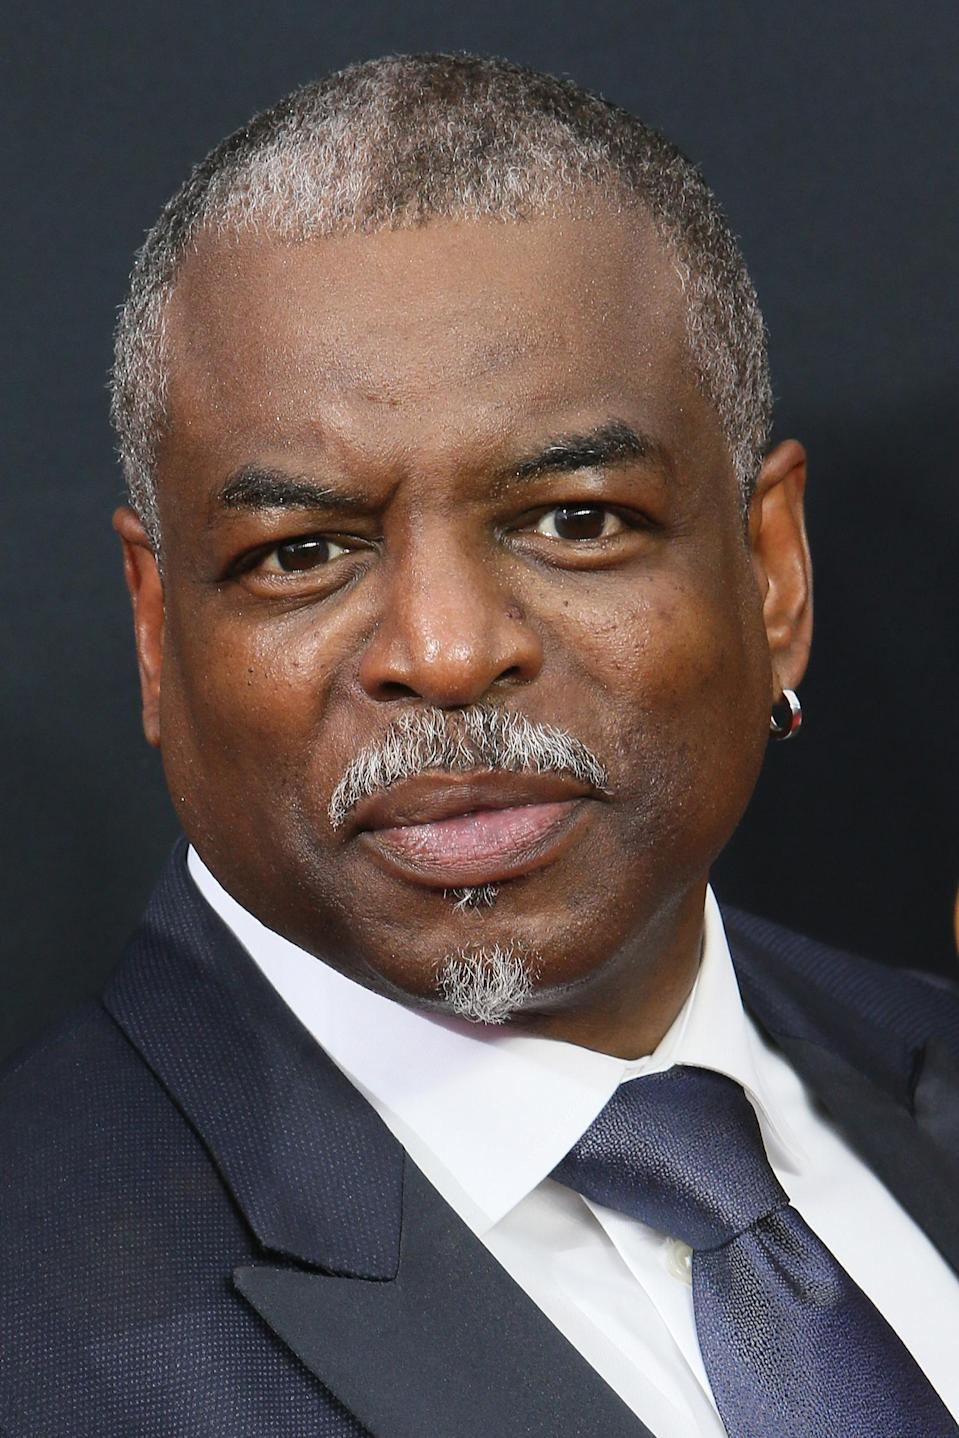 LeVar Burton (David Livingston / Getty Images)